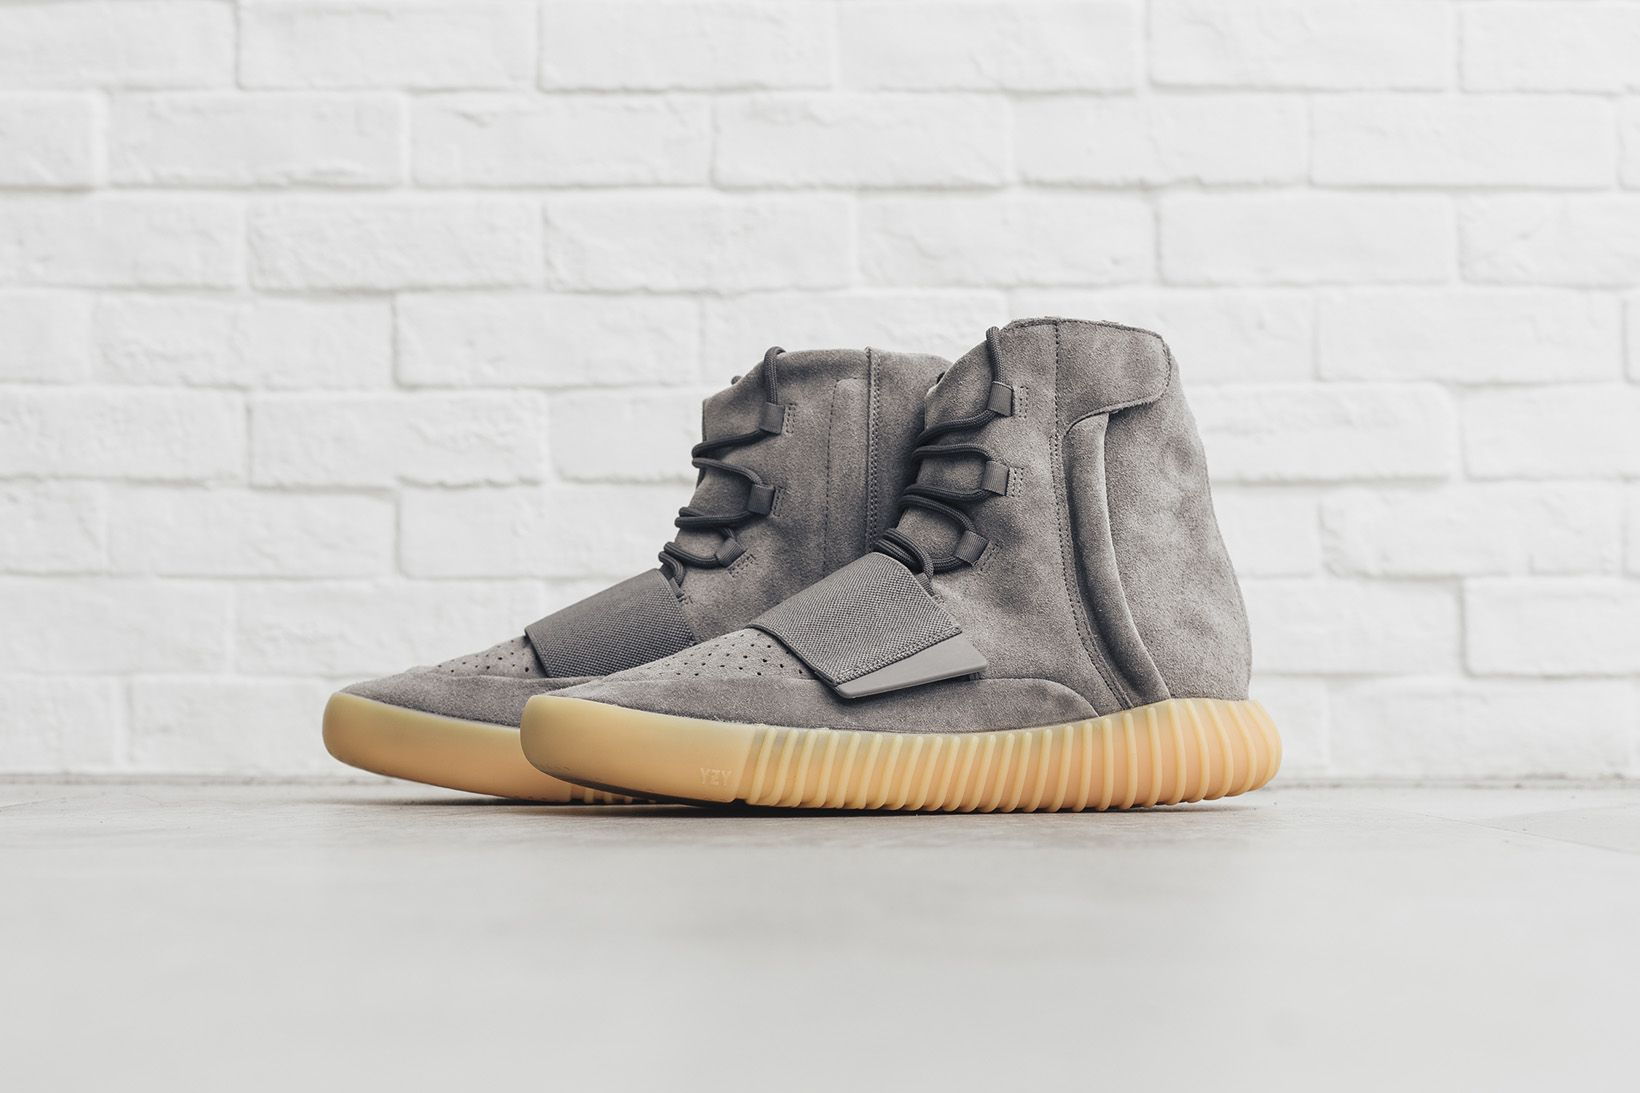 newest collection ff85d 4838b Collective Shots of the adidas Originals Yeezy Boost 750 in ...